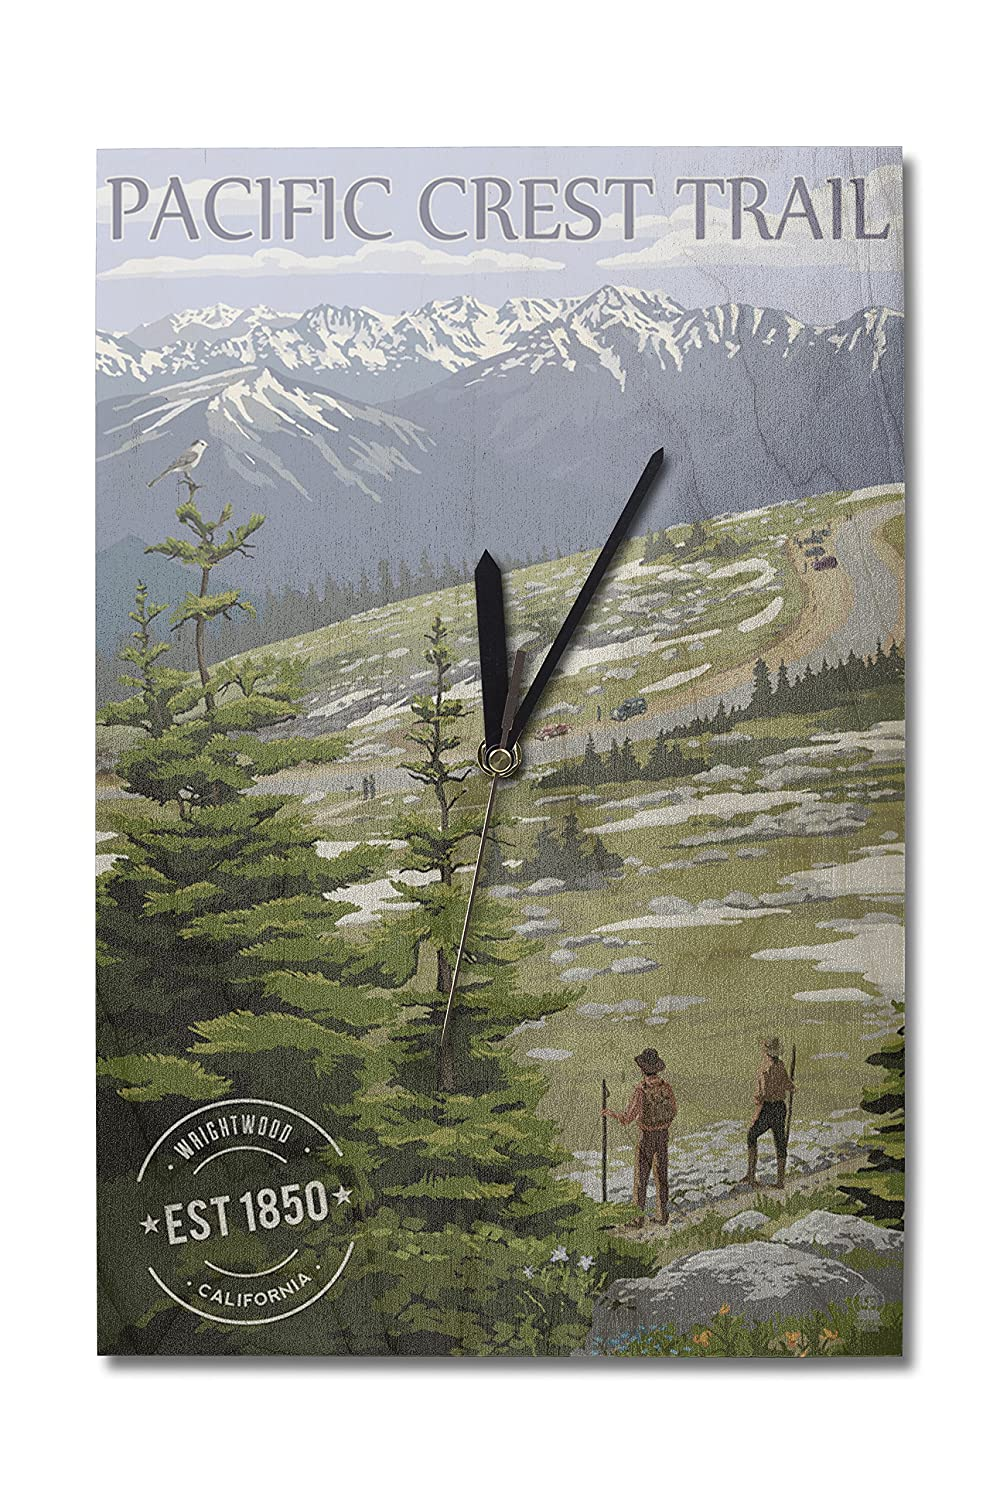 Wrightwood, California - Pacific Crest Trail and Hikers - Rubber Stamp (10x15 Wood Wall Clock, Decor Ready to Hang)